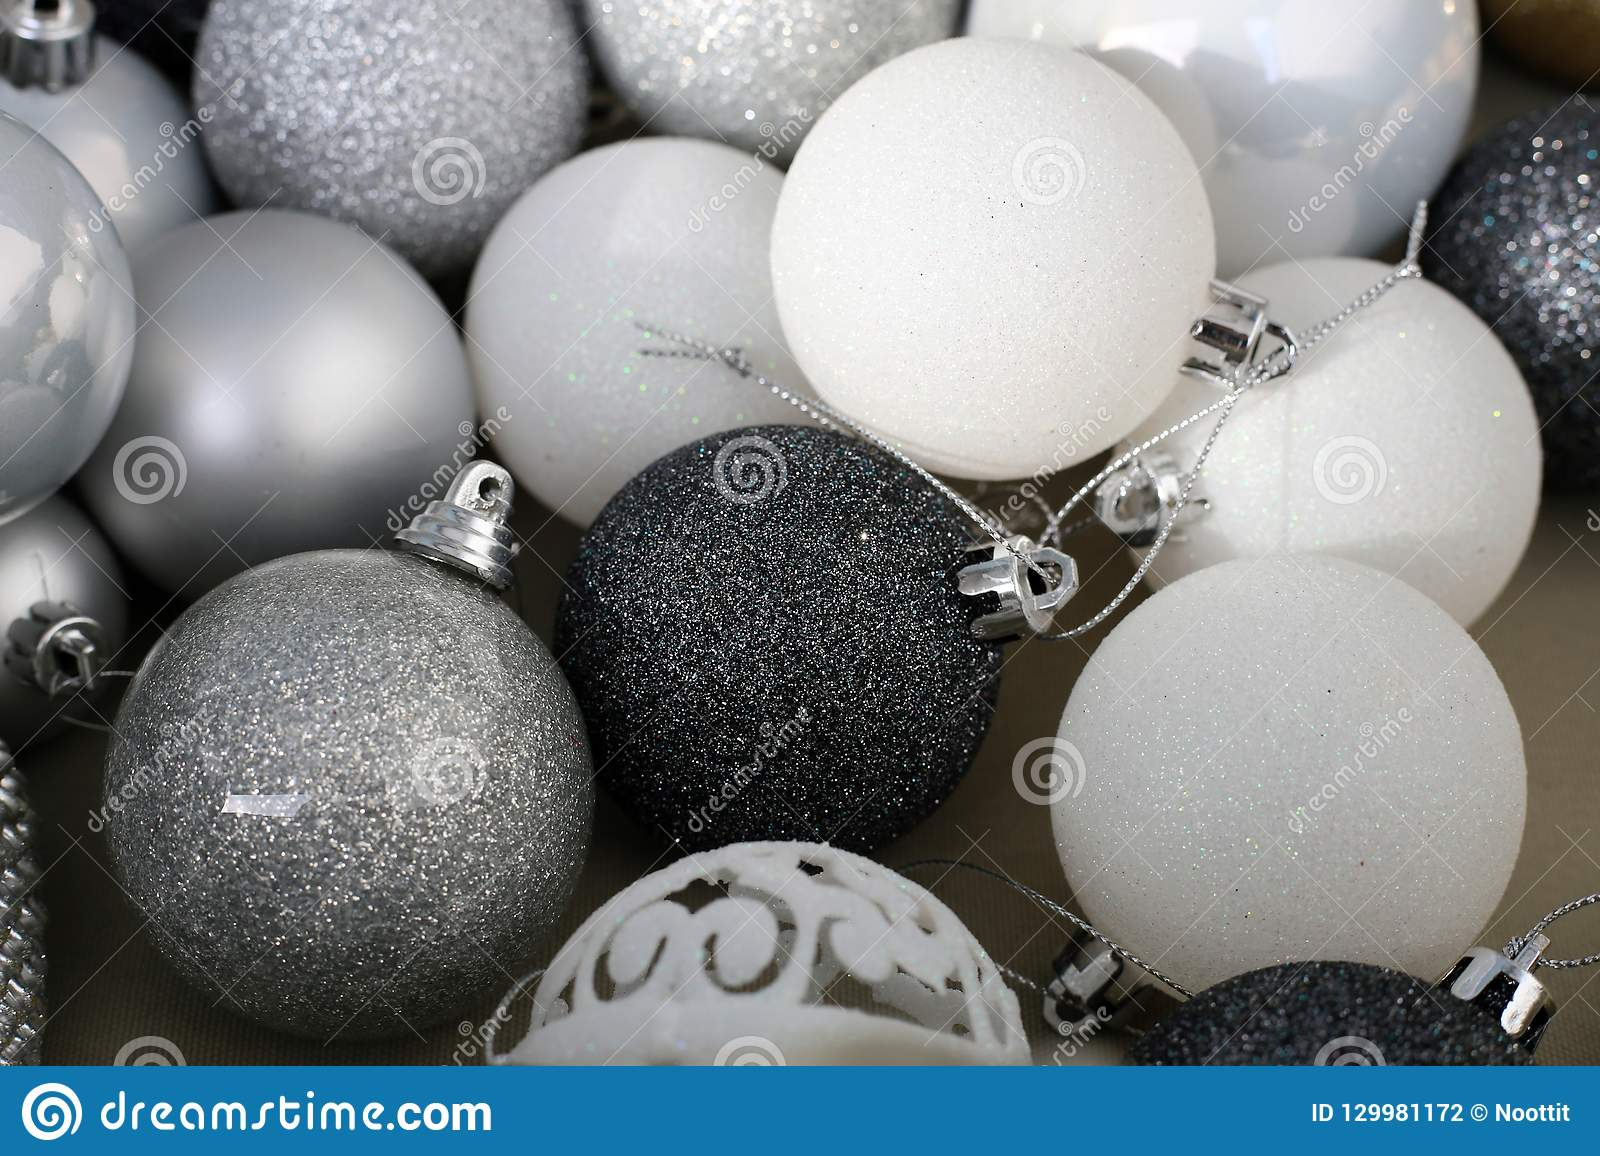 Black, White, Silver And Gray Colored Christmas Ornaments ...